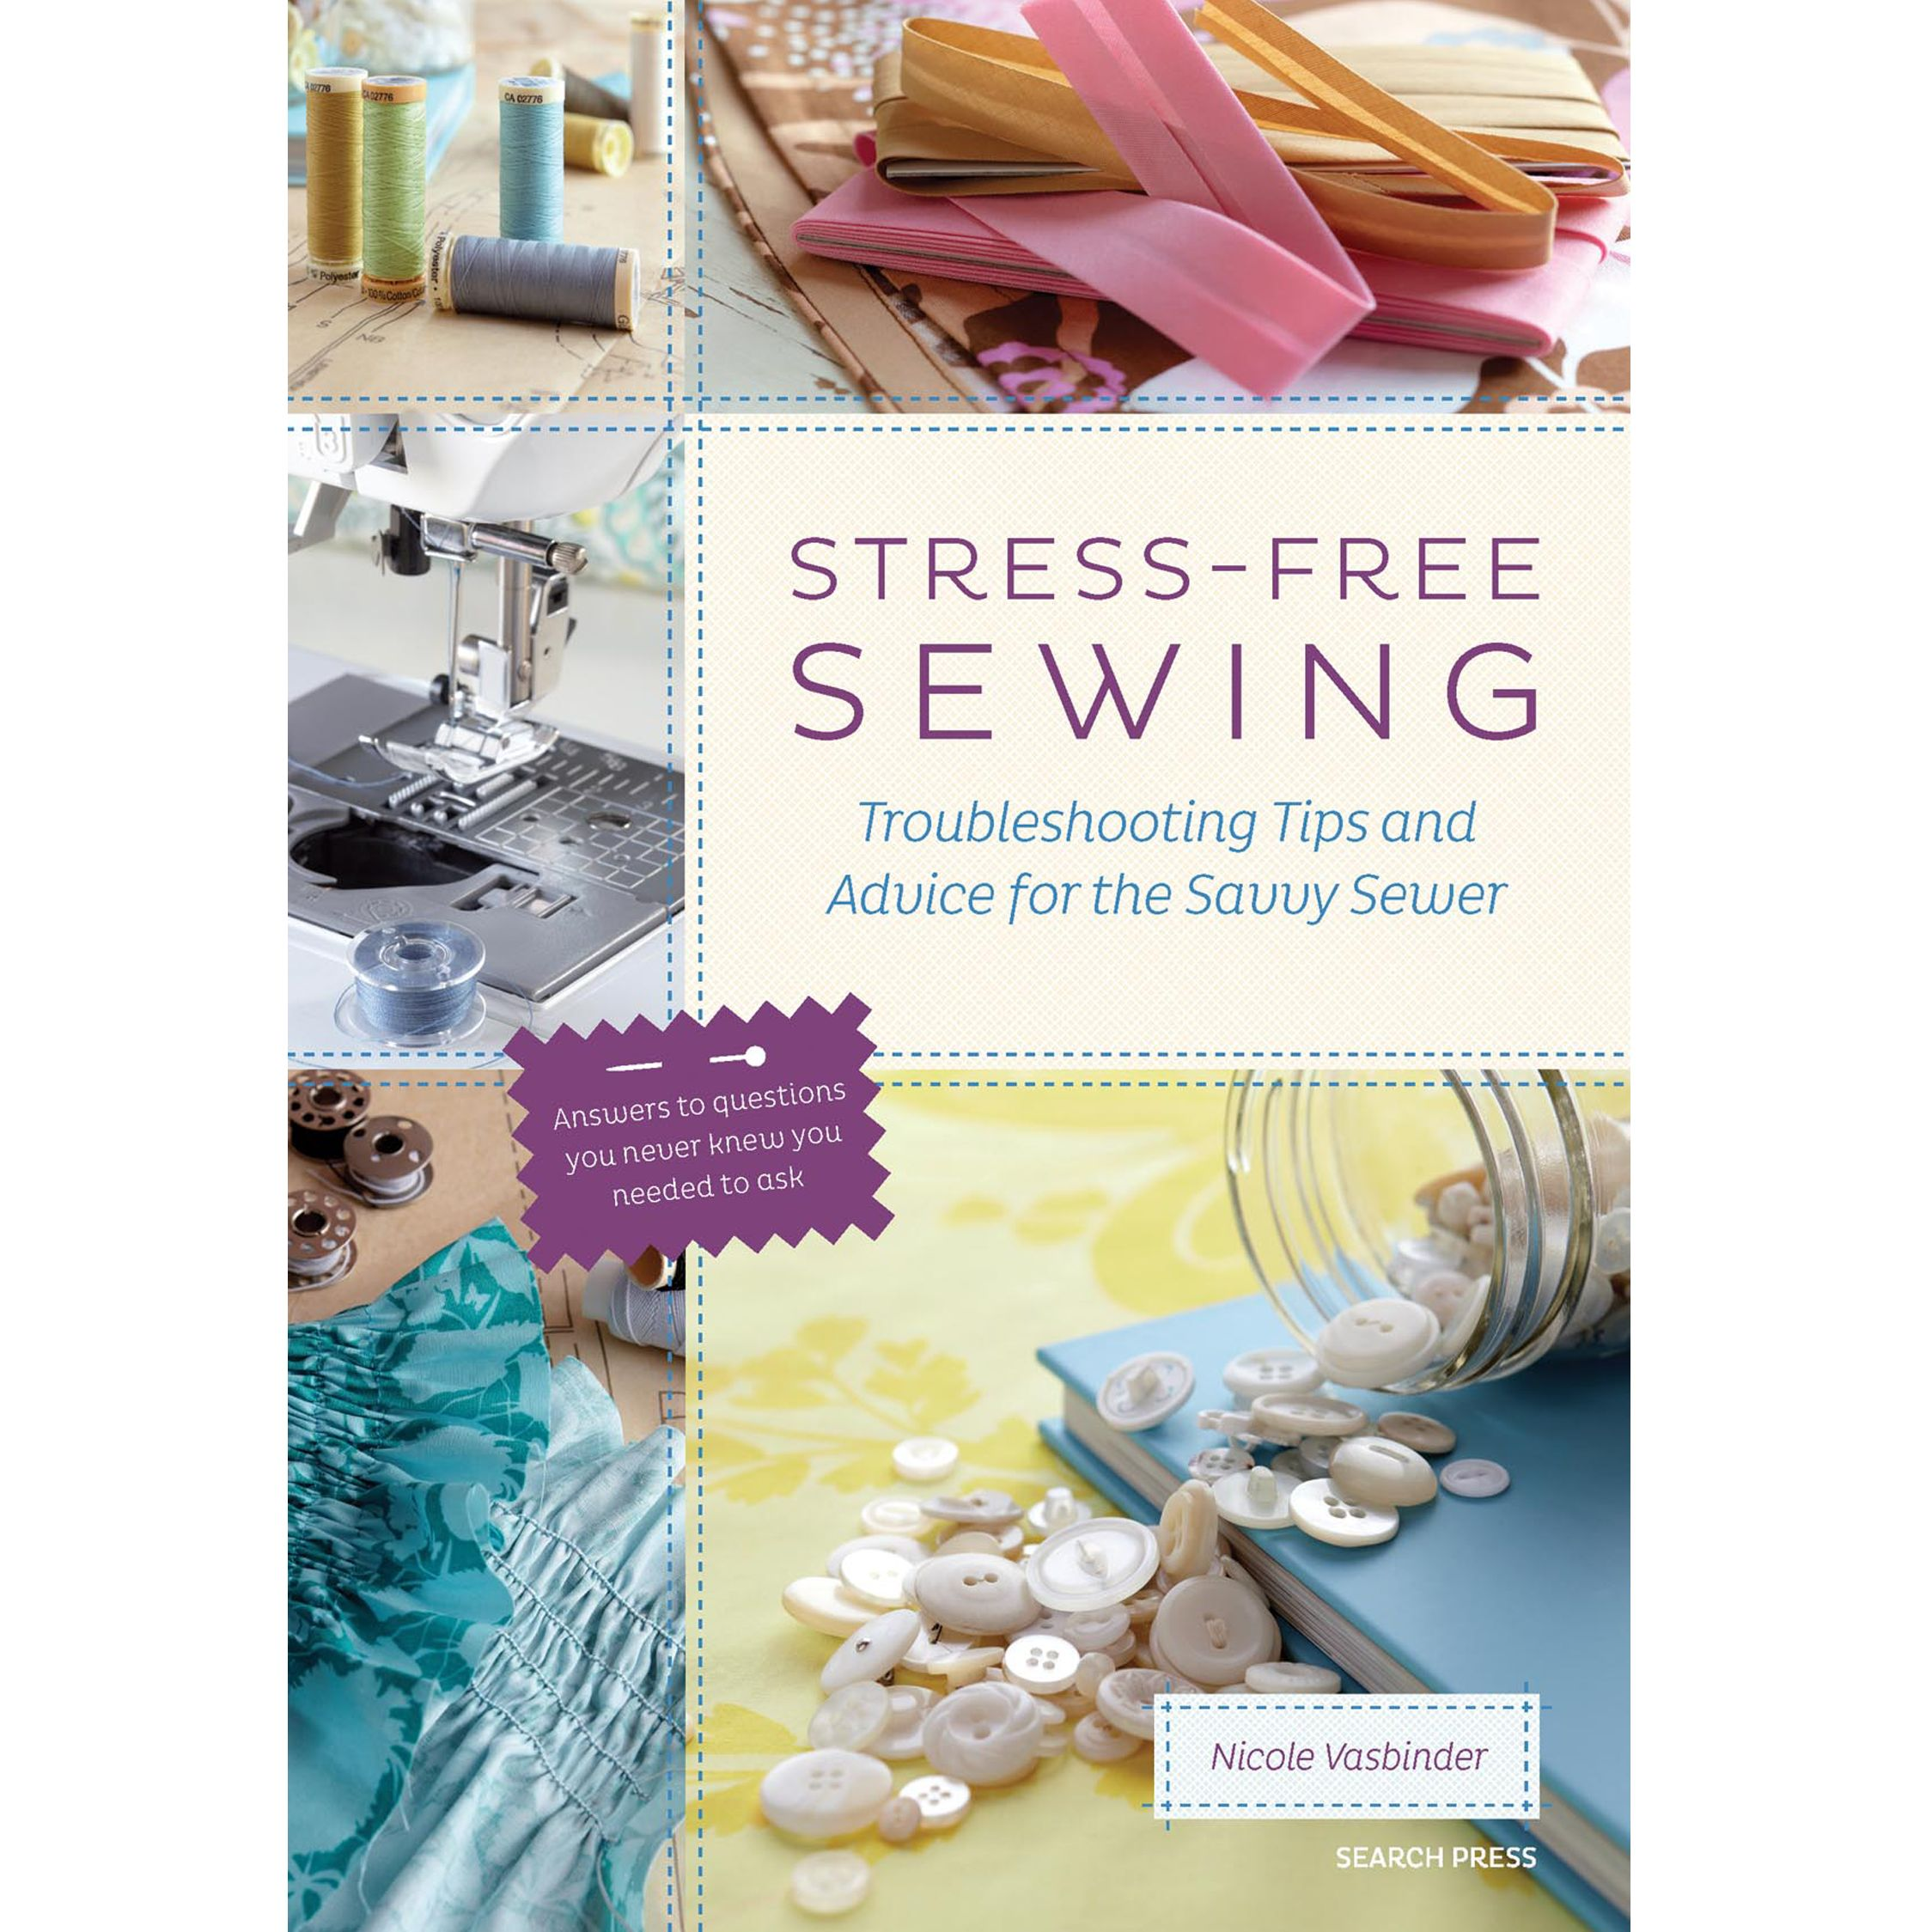 Search Press Stress-Free Sewing: Troubleshooting Tips and Advice for the Savvy Sewer